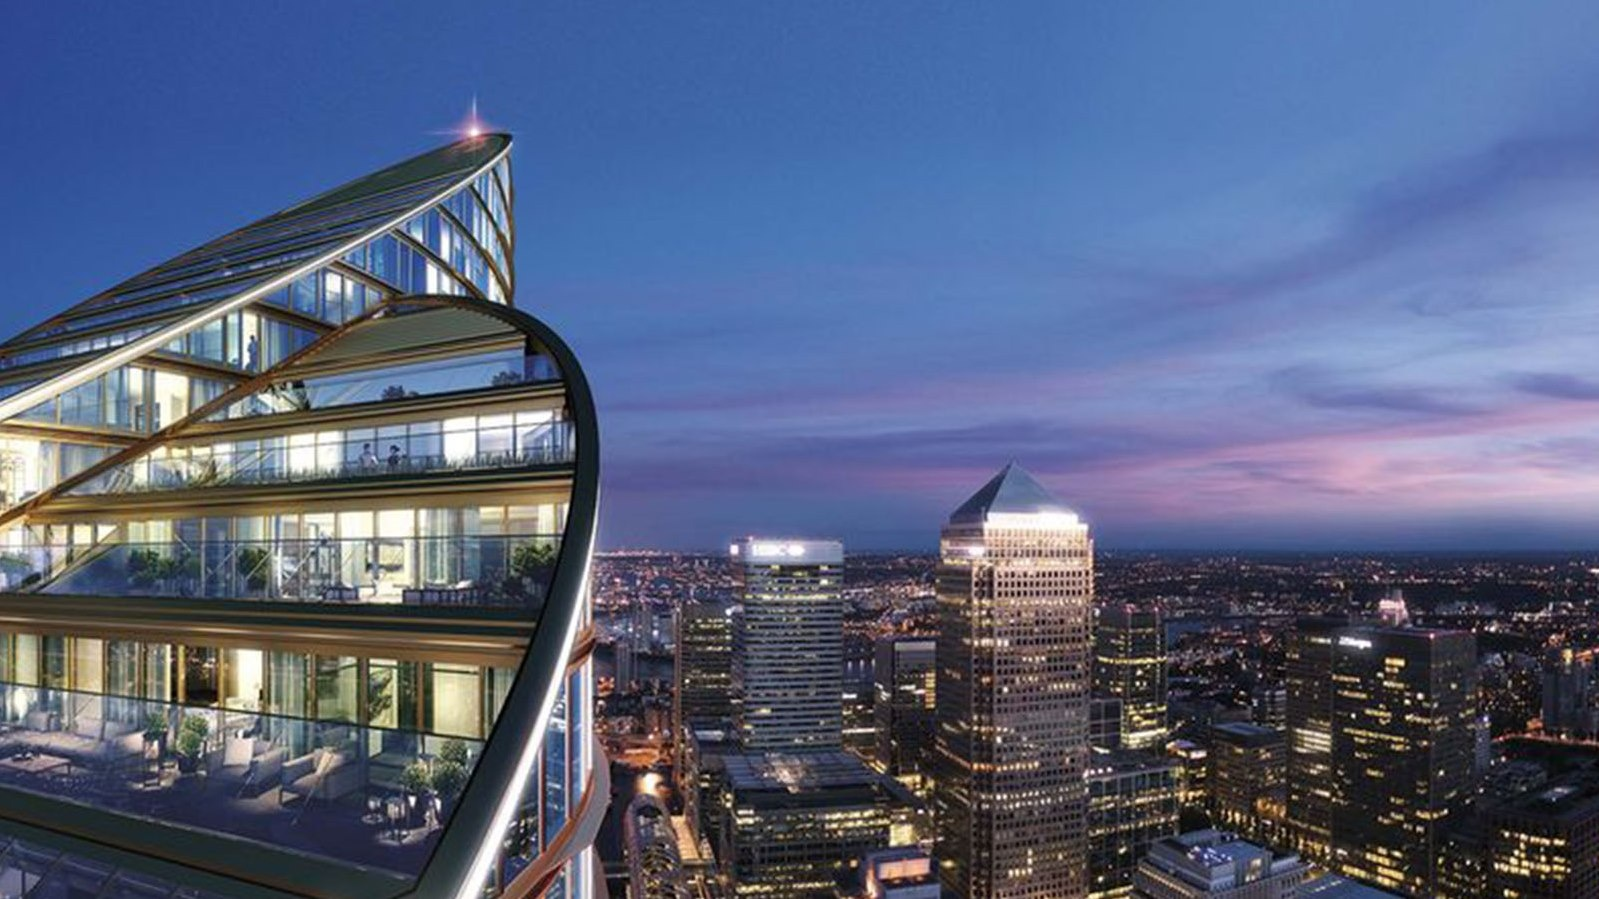 Europe's tallest residential skyscraper comes to London